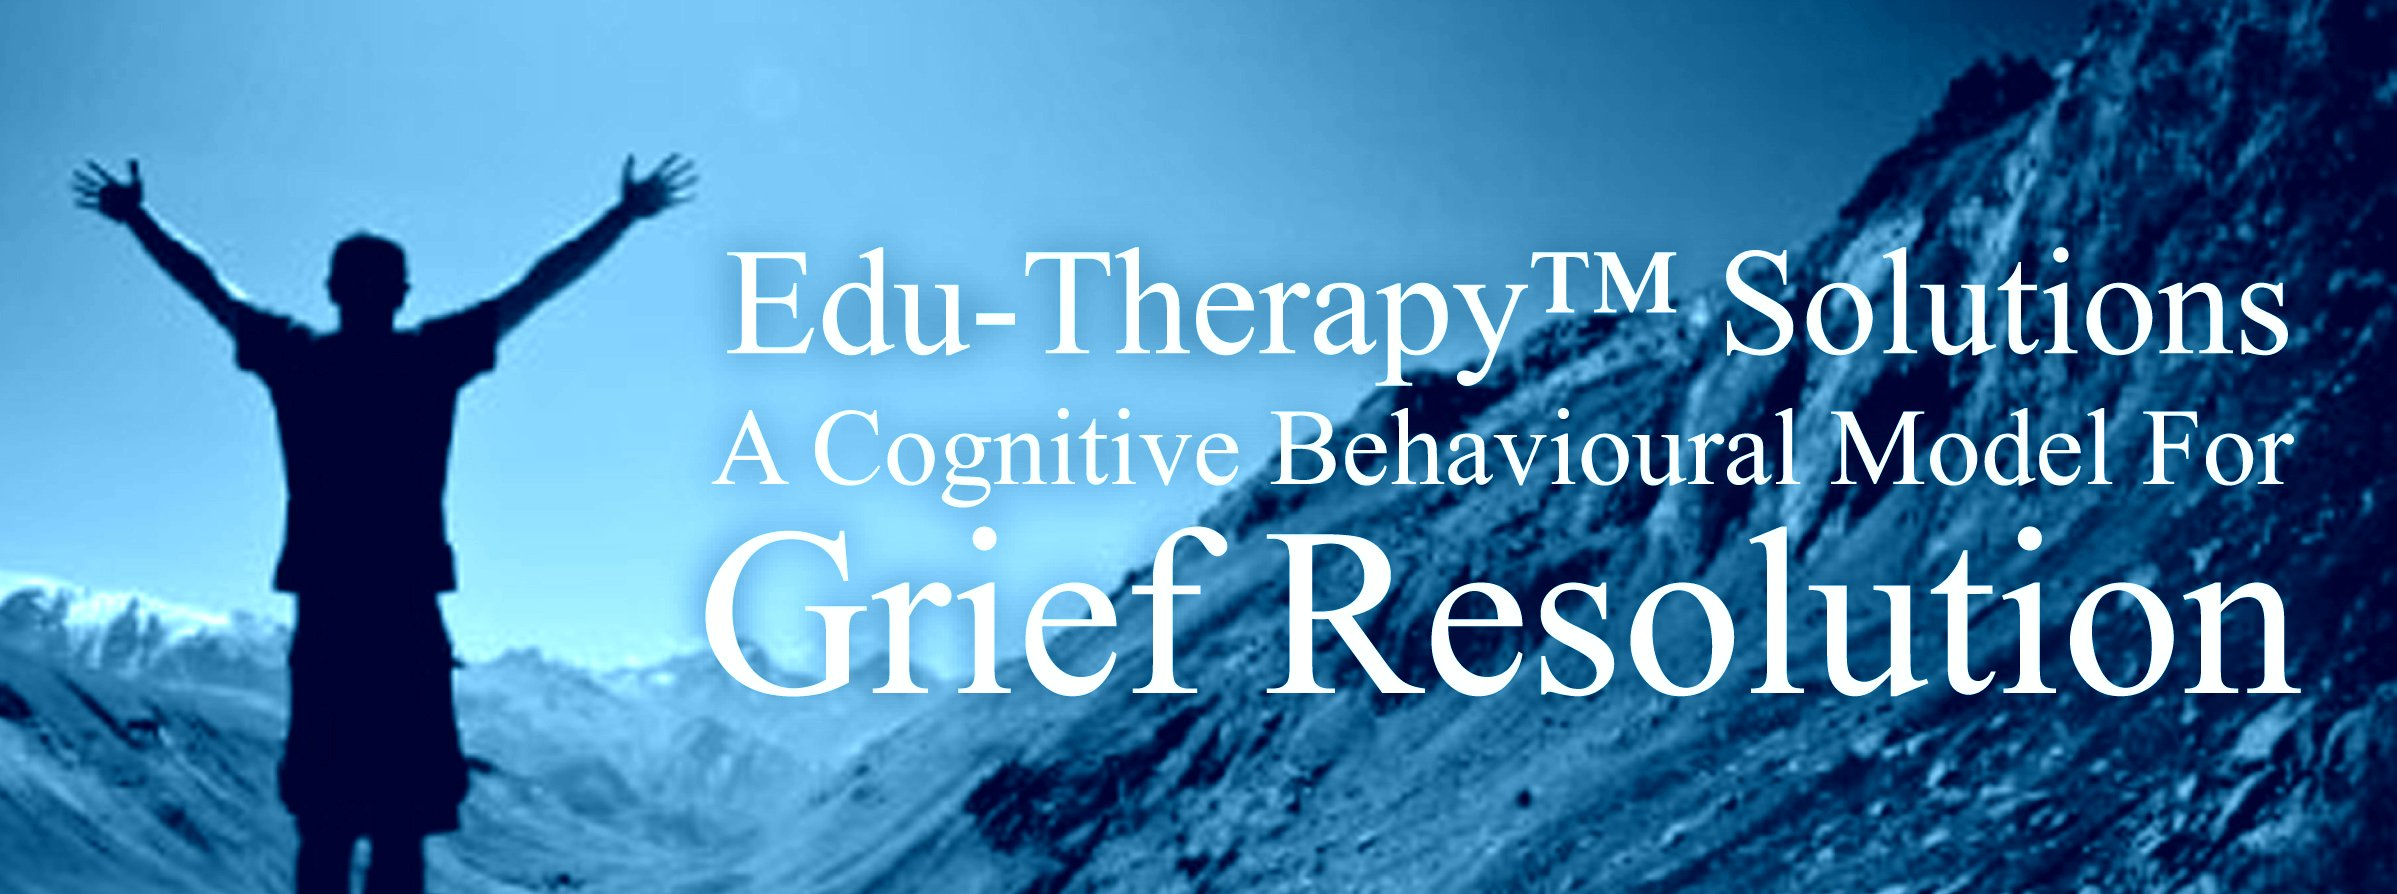 Edu-Therapy Solutions – Grief Resolution